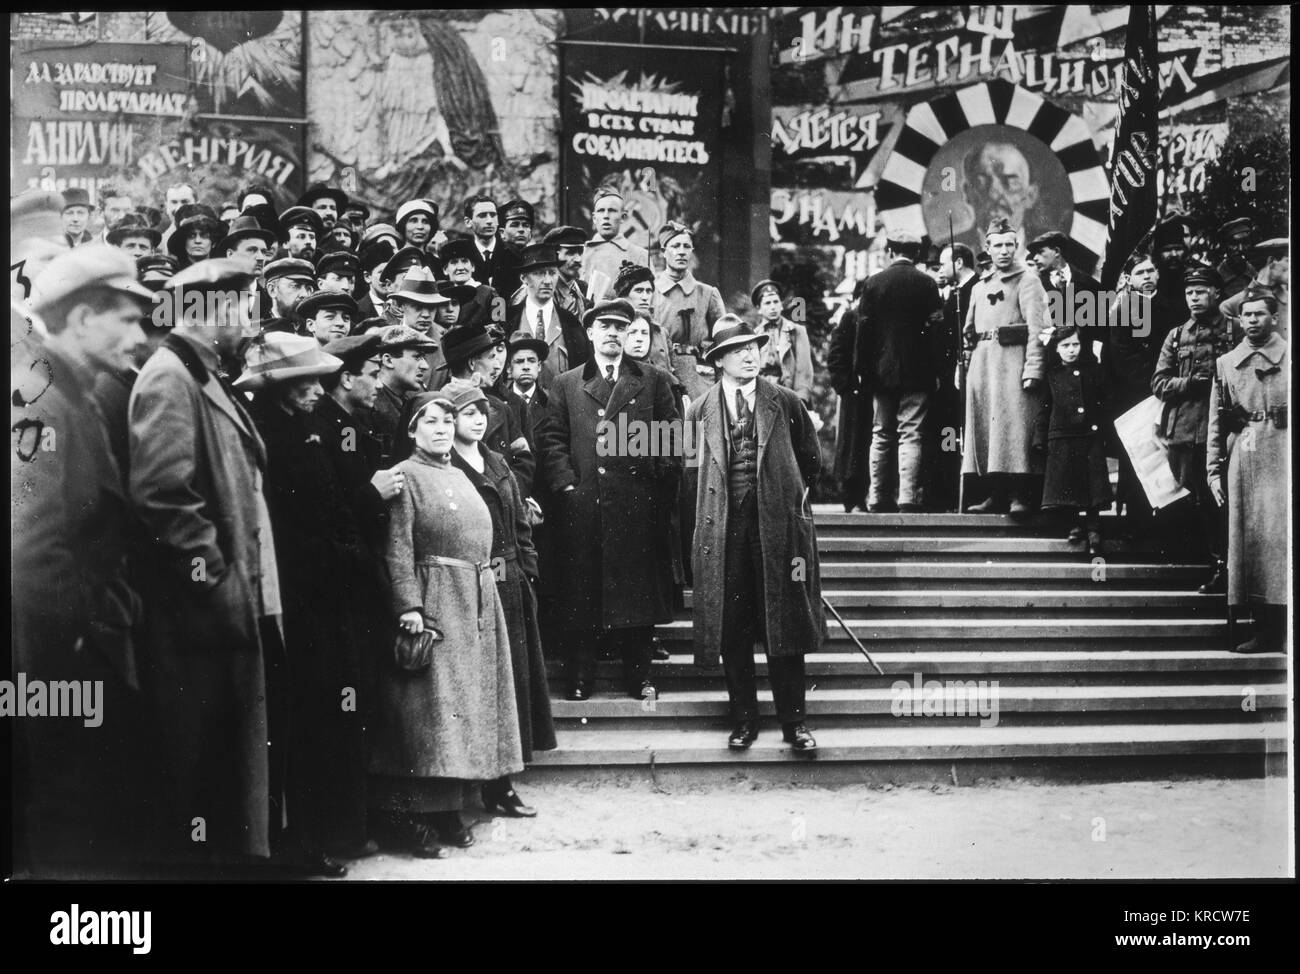 Lenin stands in front of the Kremlin for the May Day parade. Date: 1919 - Stock Image